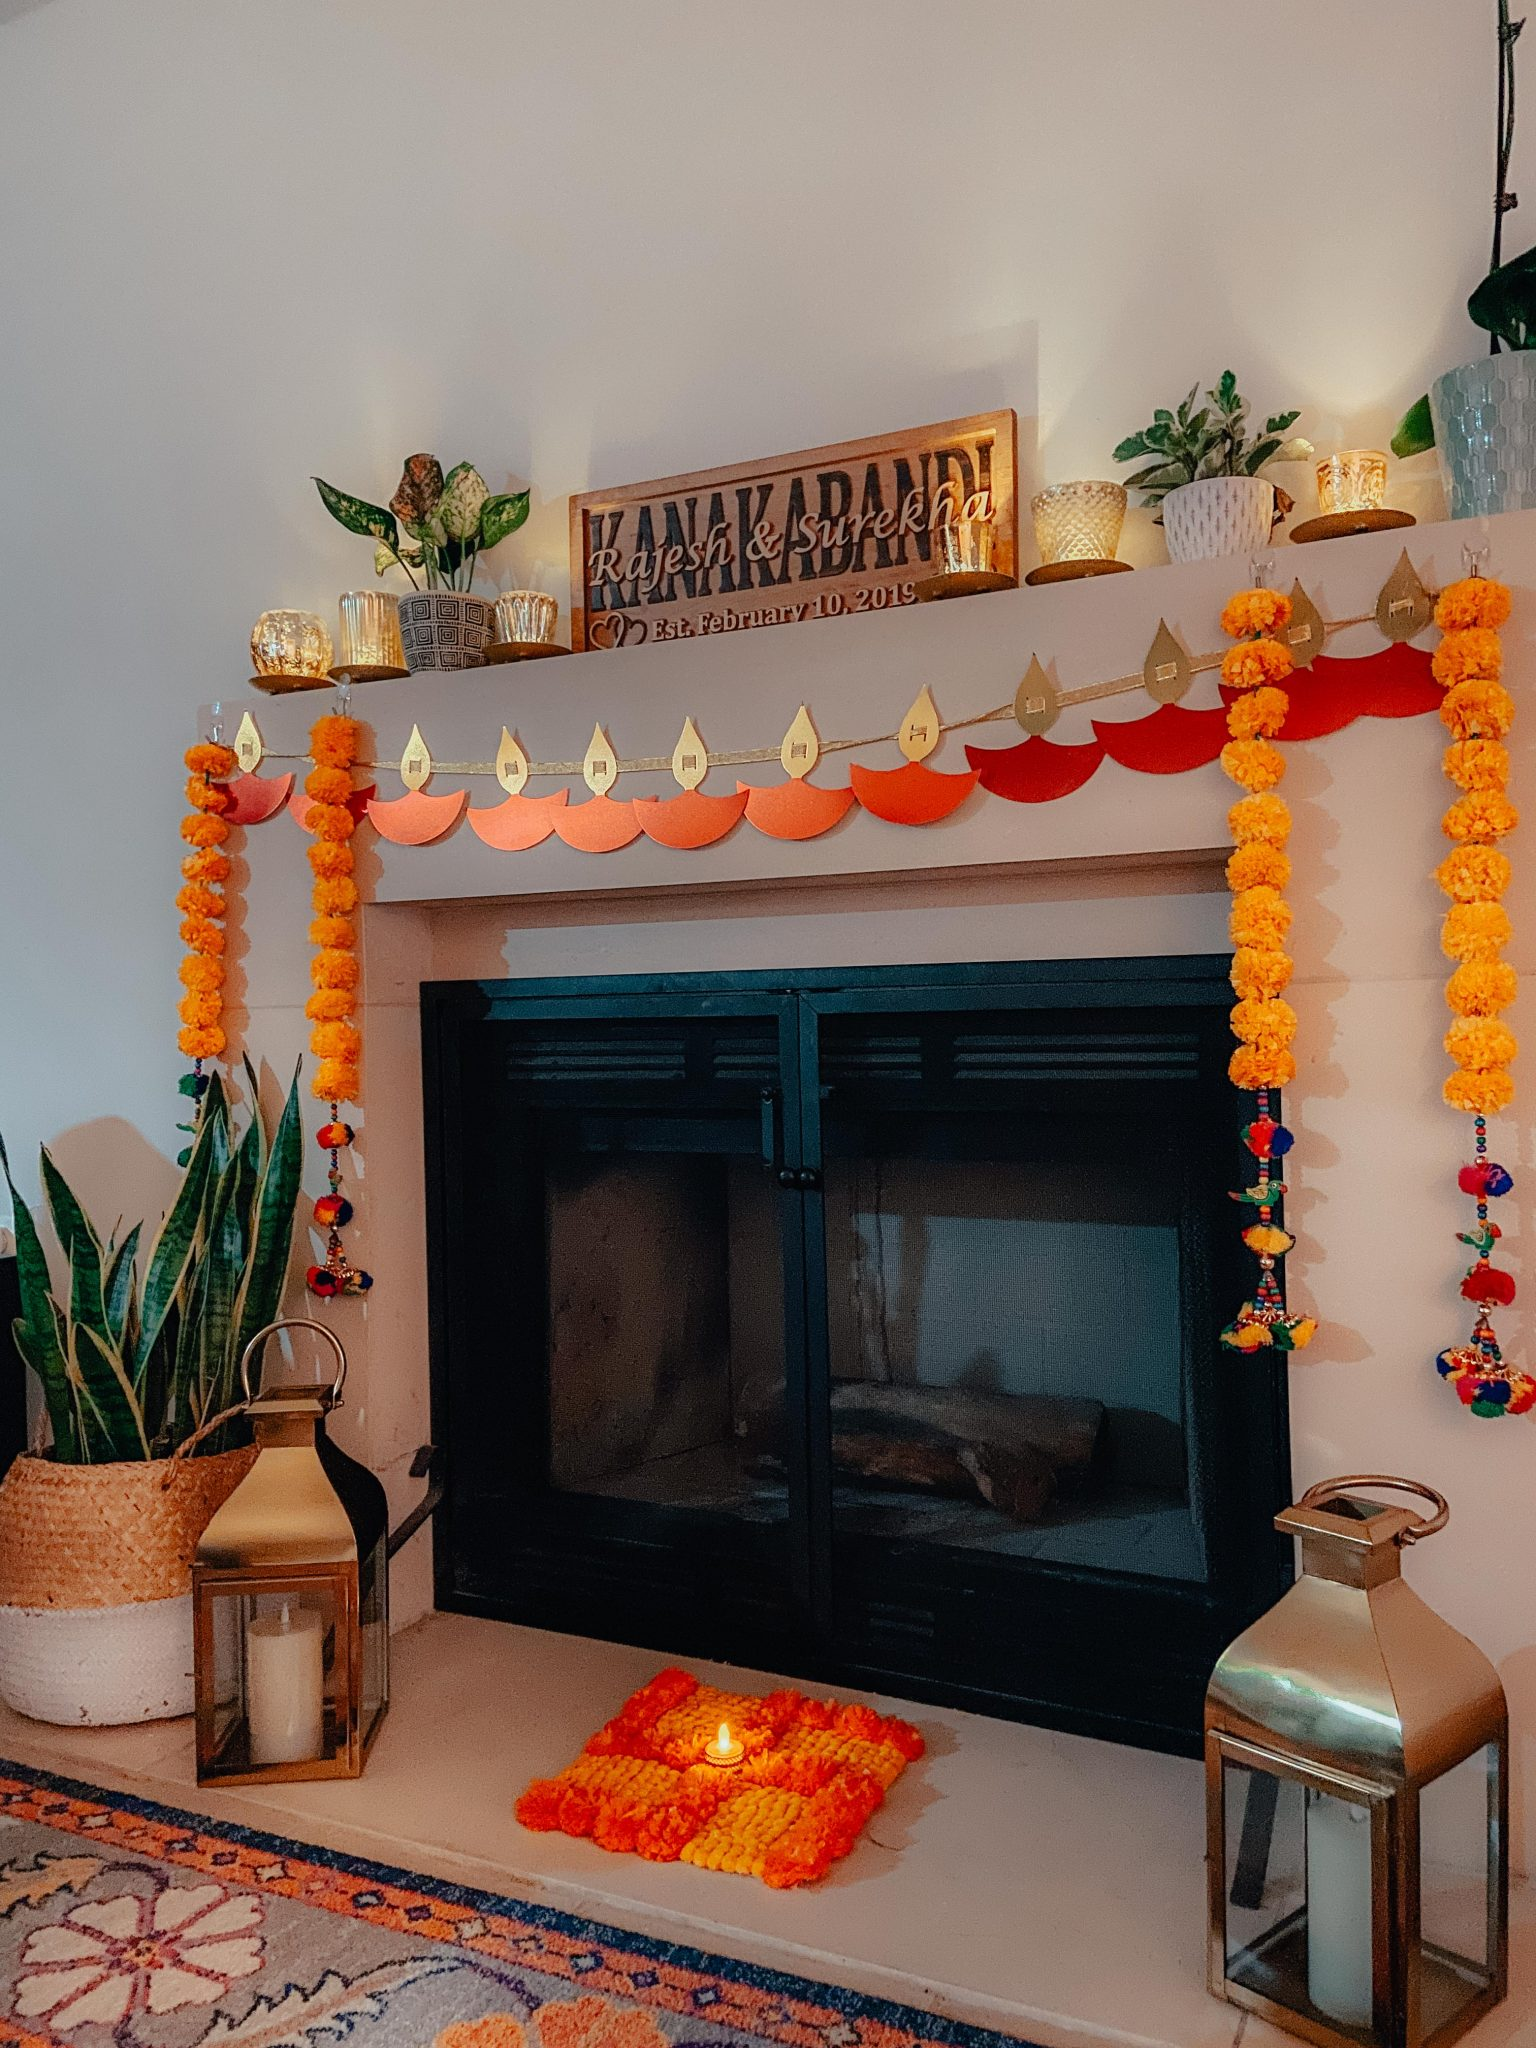 Simple Diwali Decoration ideas featured by top MD lifestyle blogger, Dreaming Loud: Fire Place Diwali Decoration | Diwali Decoration Ideas: image of a fireplace decorated with a Diya Banner, Swastik mat, Marigold hangings c/o Kula Village, and Gold Votives.